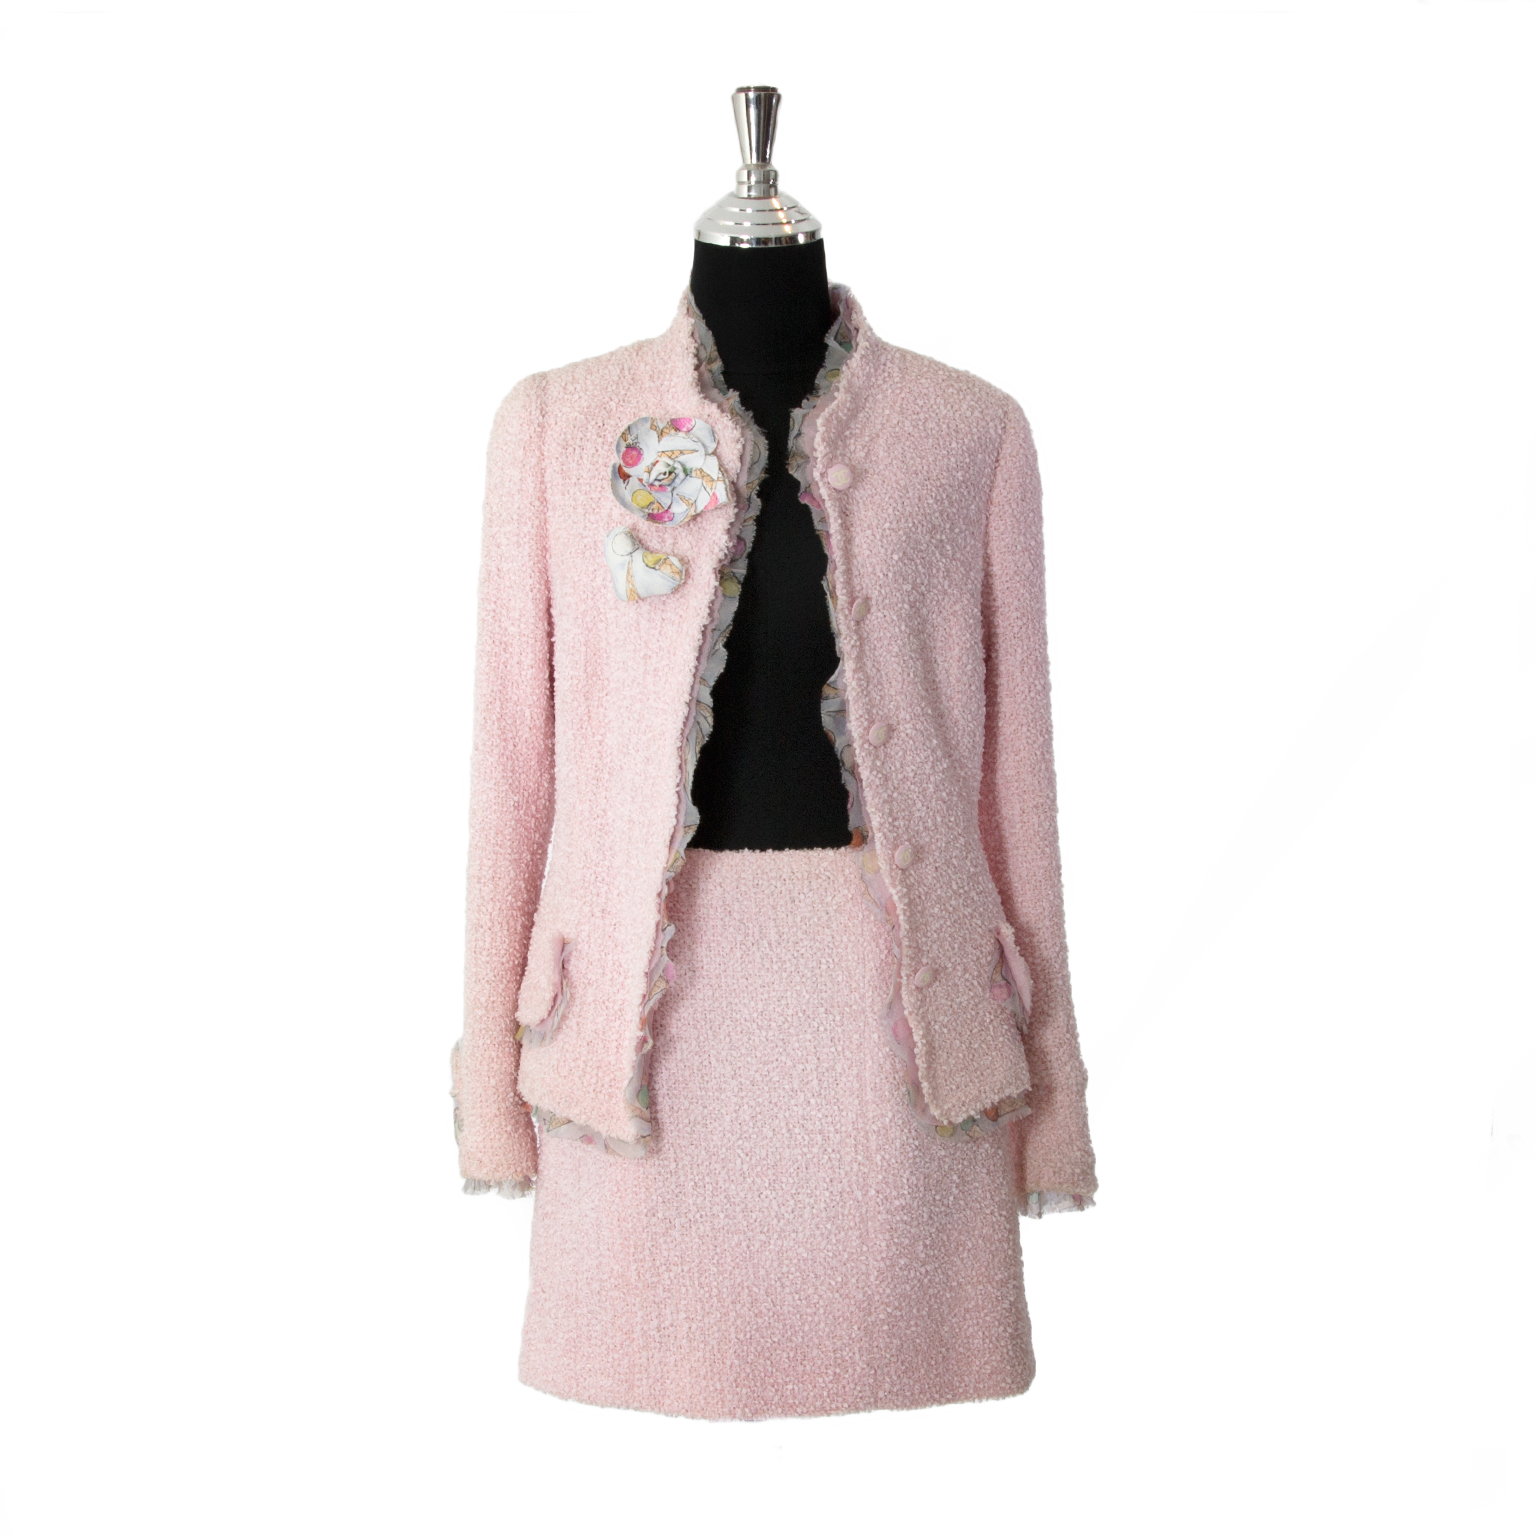 40817fd668d3 ... Chanel Pink Two-Piece Skirt Suit, Buy it on Labellov, an online platform